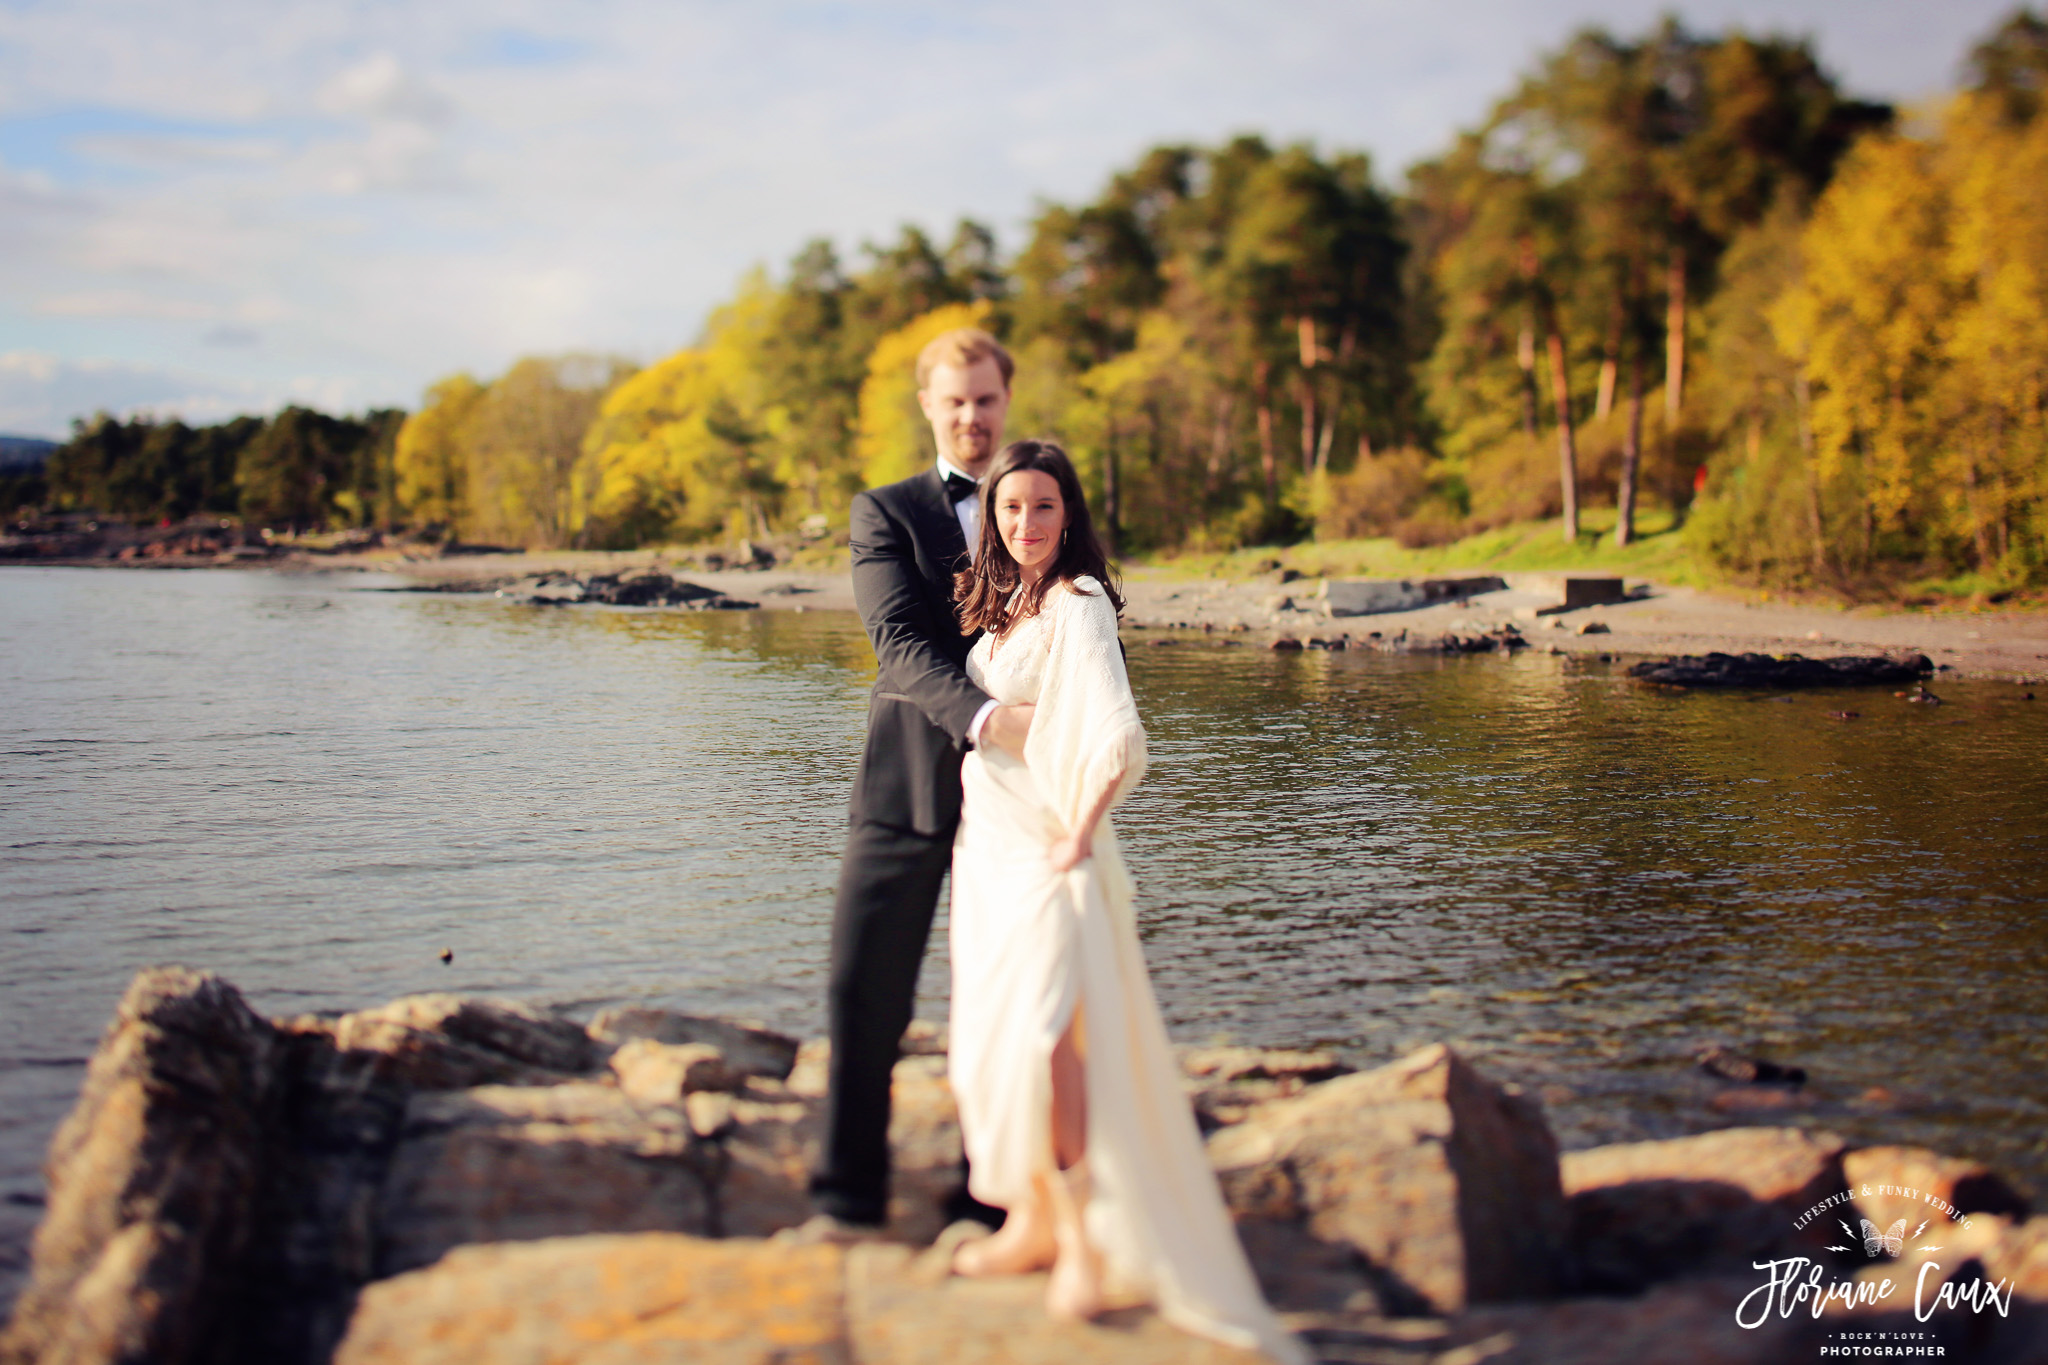 destination-wedding-photographer-oslo-norway-floriane-caux-75